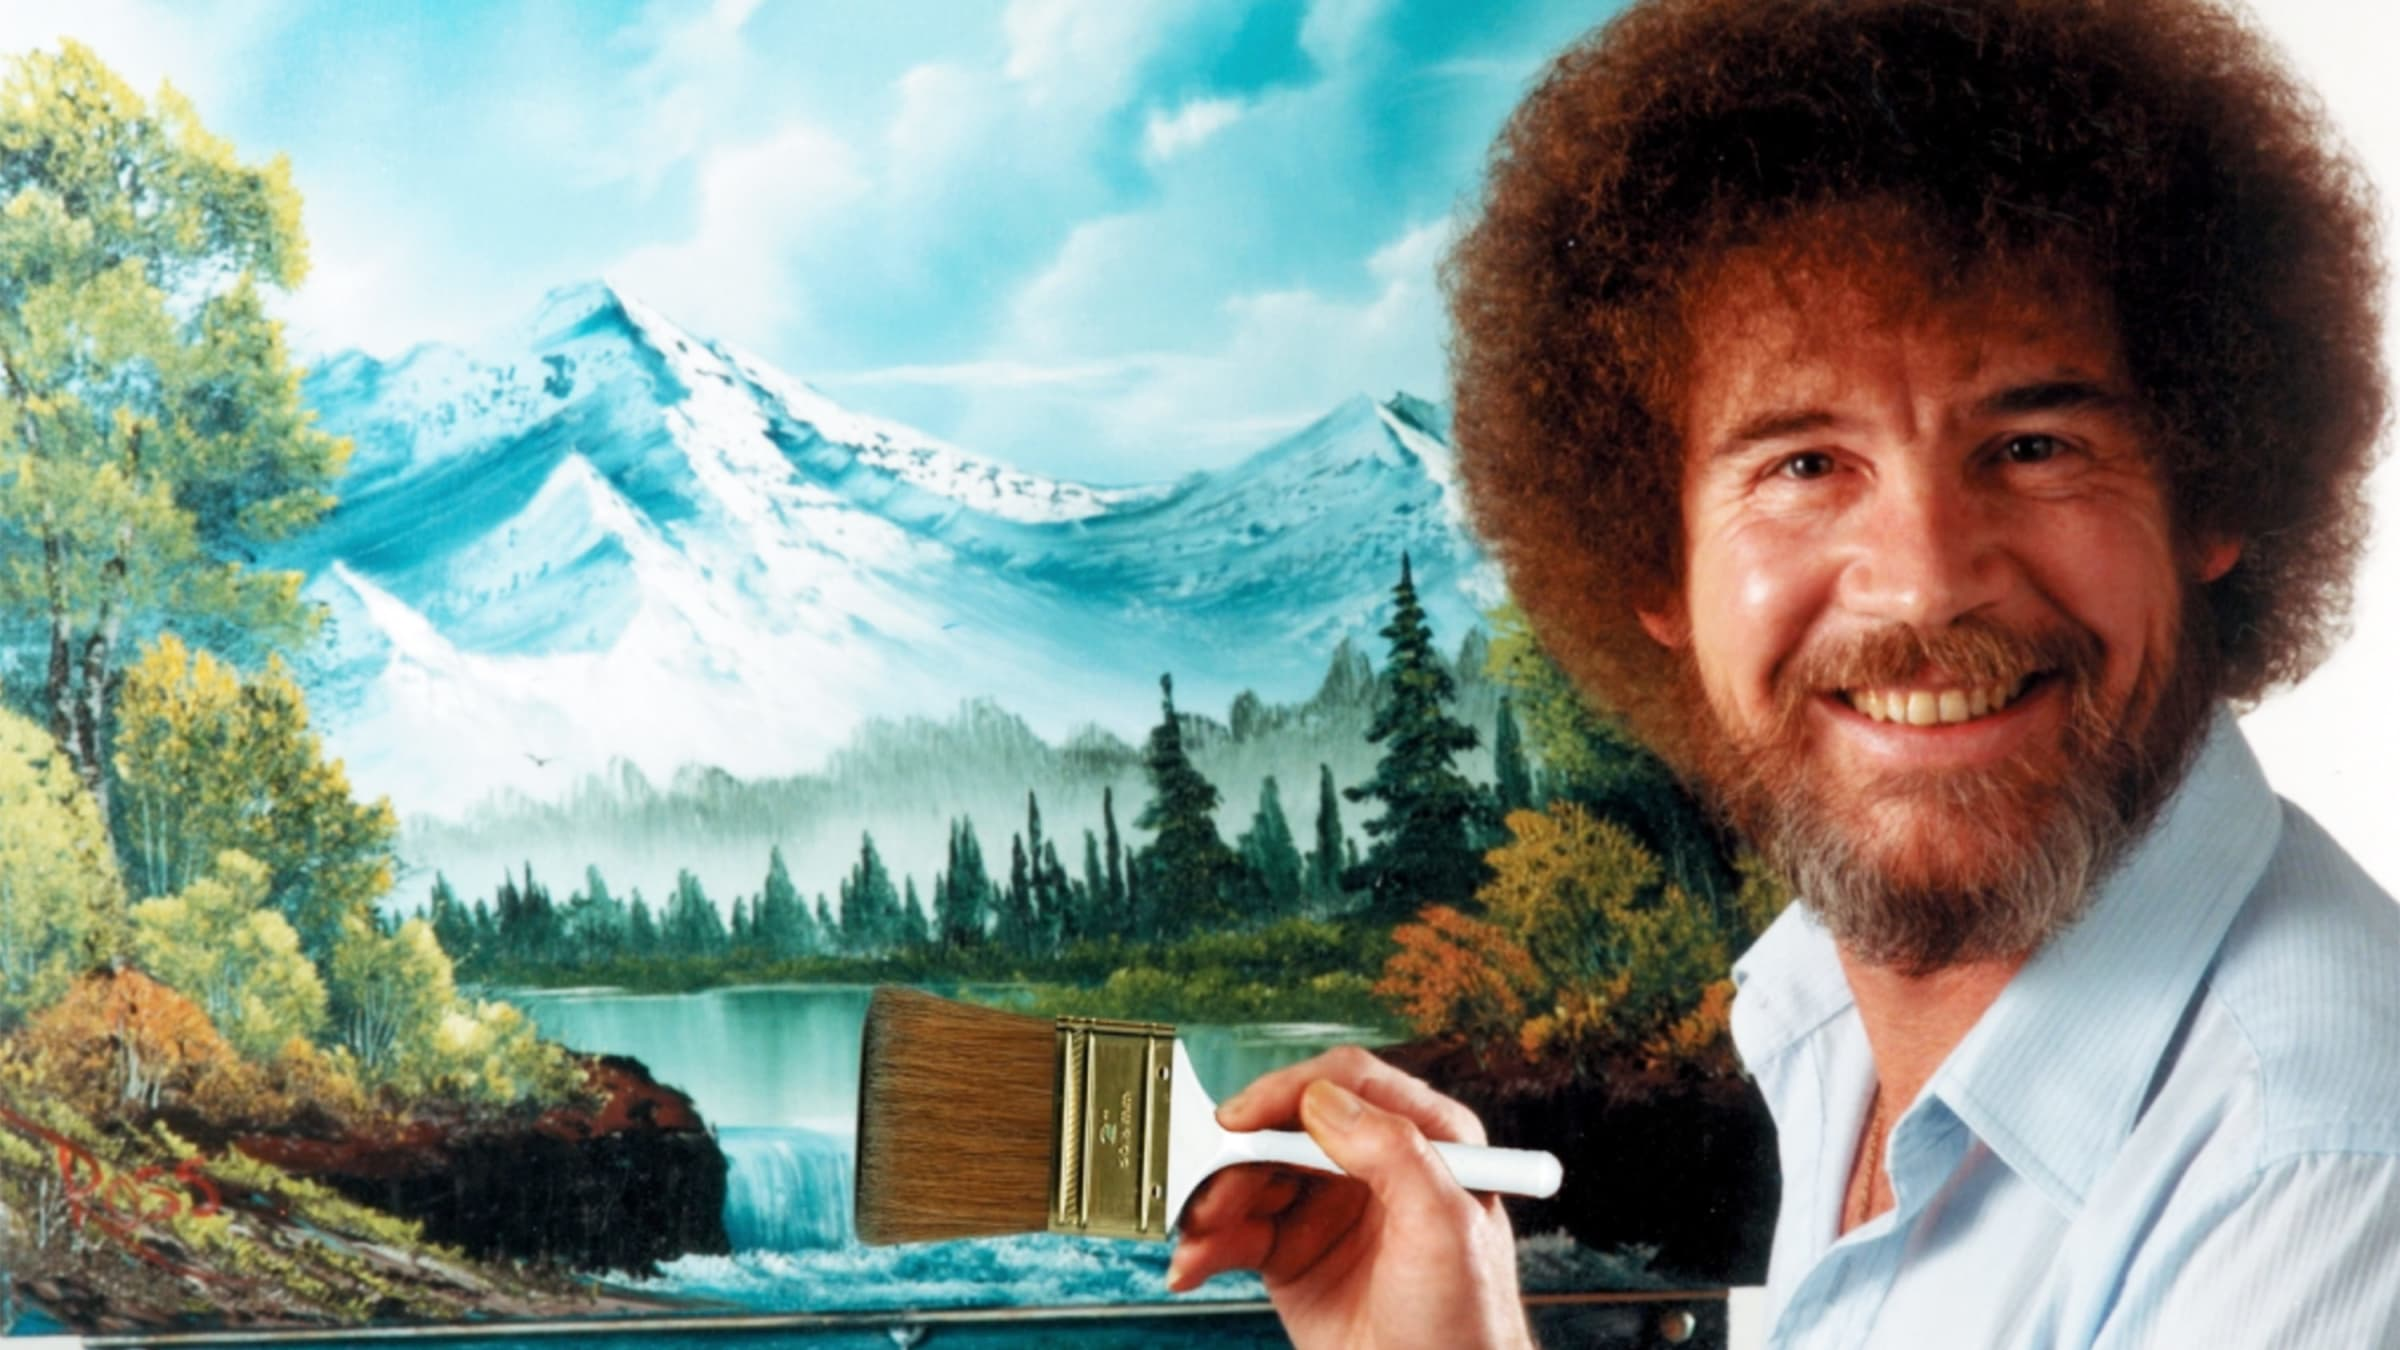 Bob Ross succession planning significance